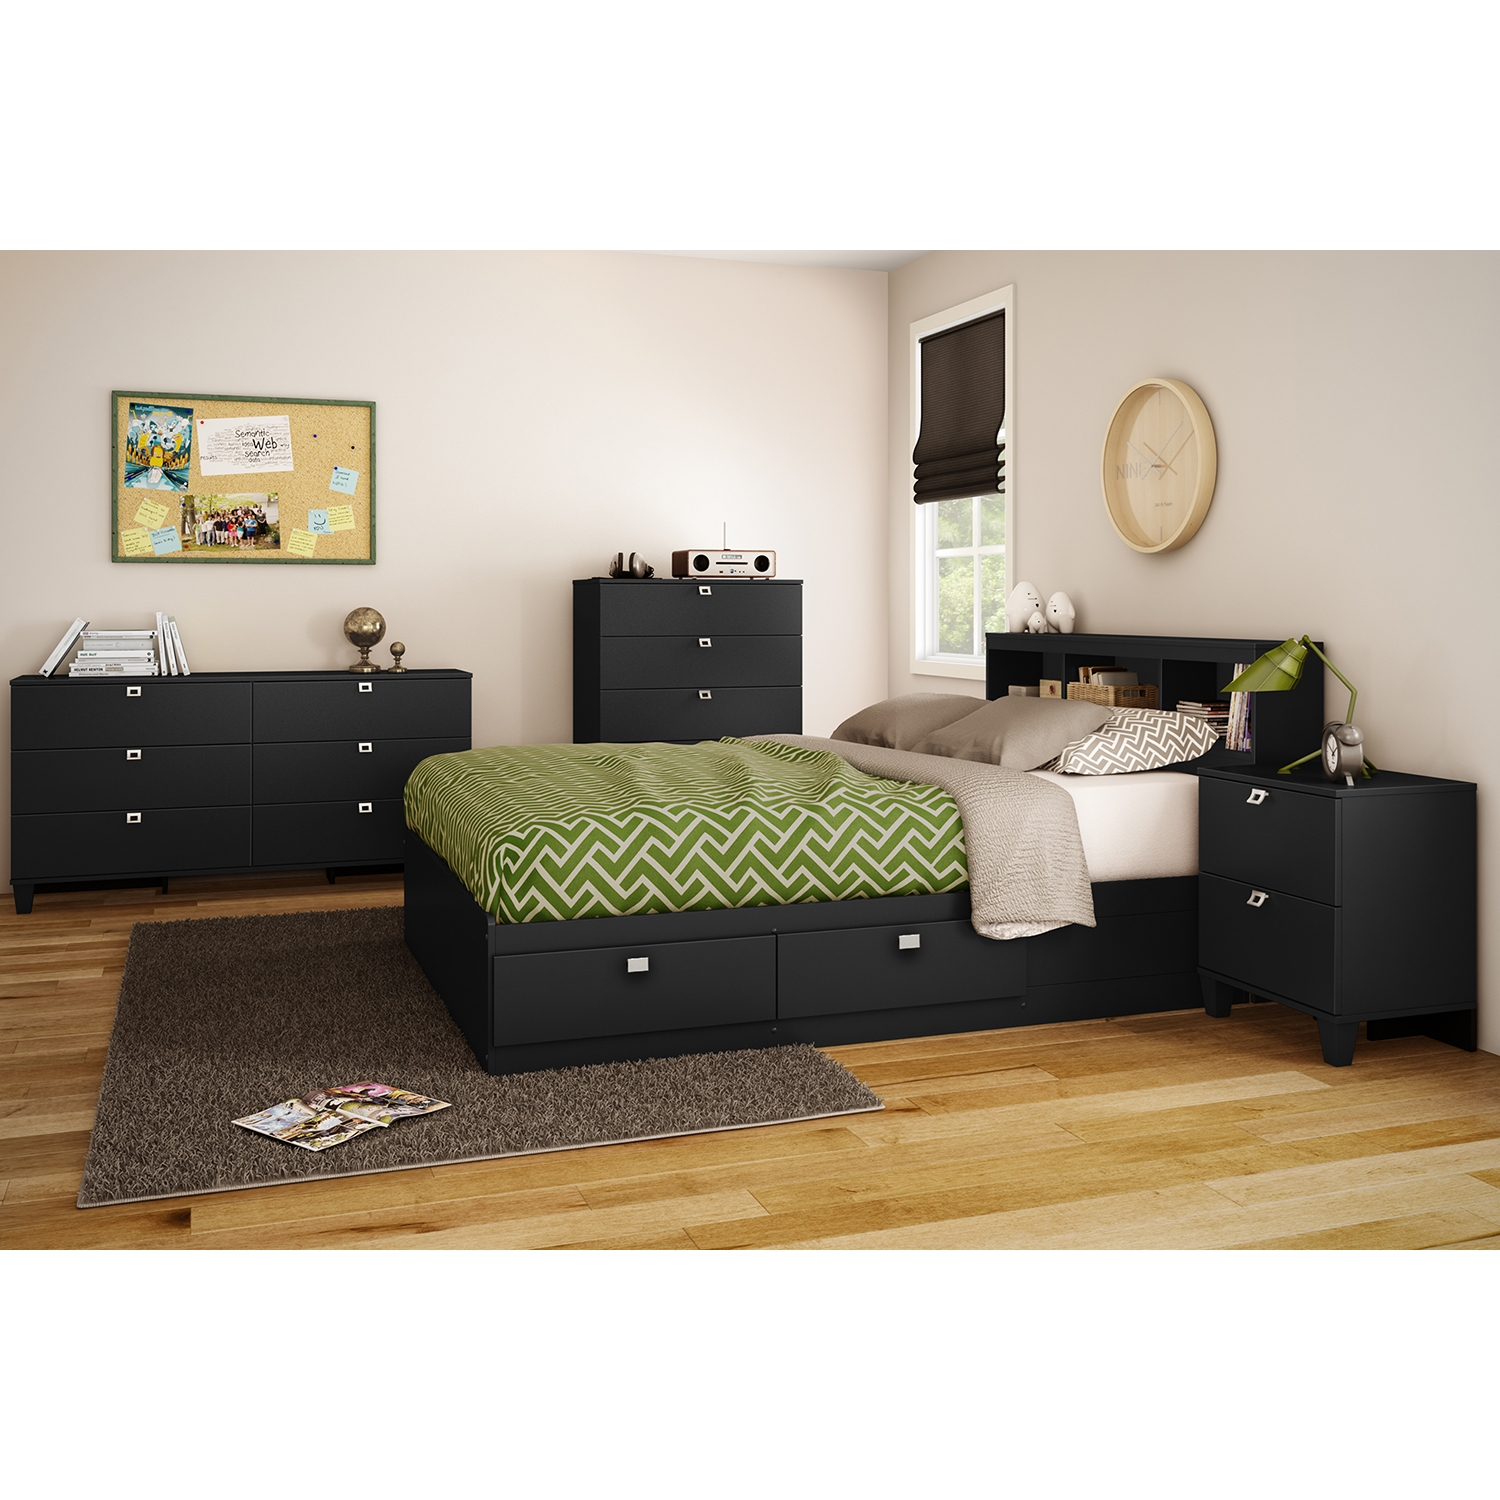 Karma Full Mates Bed - 4 Drawers, Pure Black - SS-9001D1